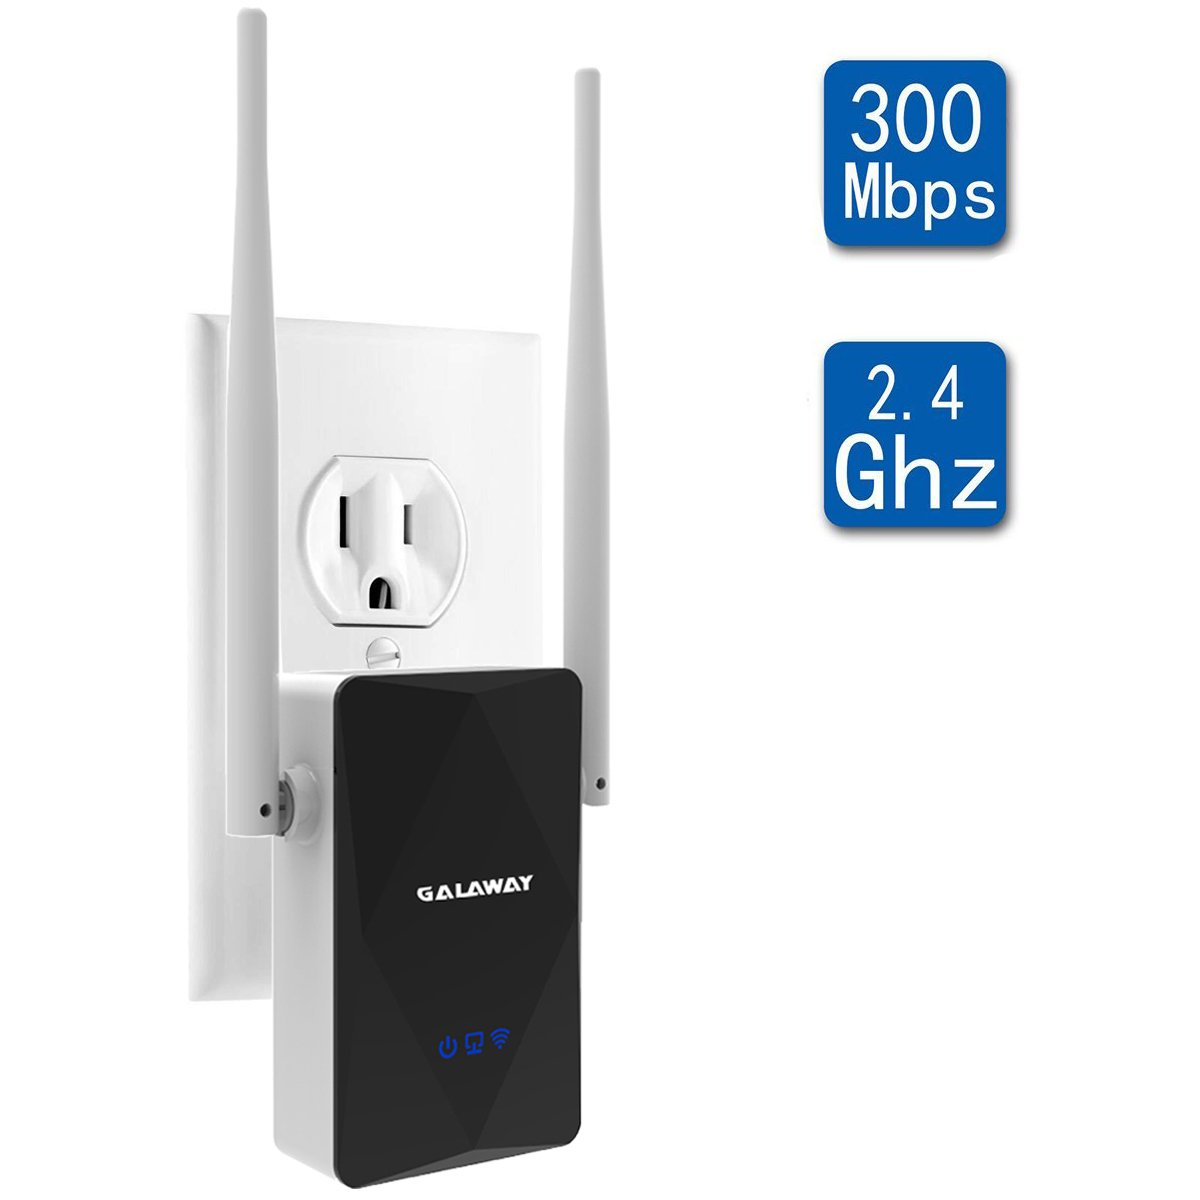 GALAWAY G308 WIFI Extender 300Mbps Wireless Signal Range Repeater With 2.4G External Antennas Support WEP/WPA/WPA2 Encryption Wireless Network Signal Booster